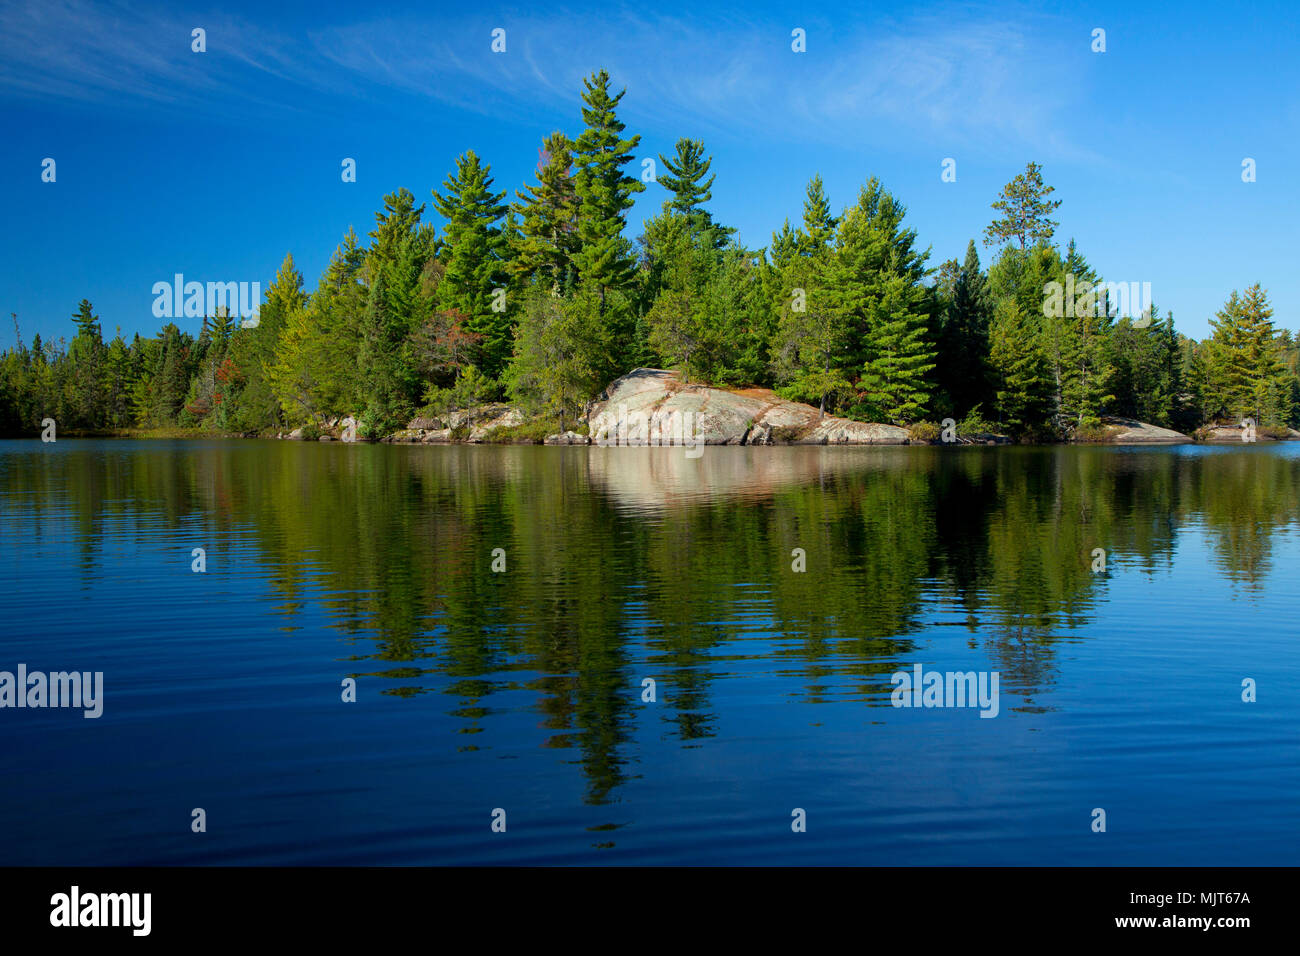 South Hegman Lake, Boundary Waters Canoe Area Wilderness, Superior National Forest, Minnesota - Stock Image